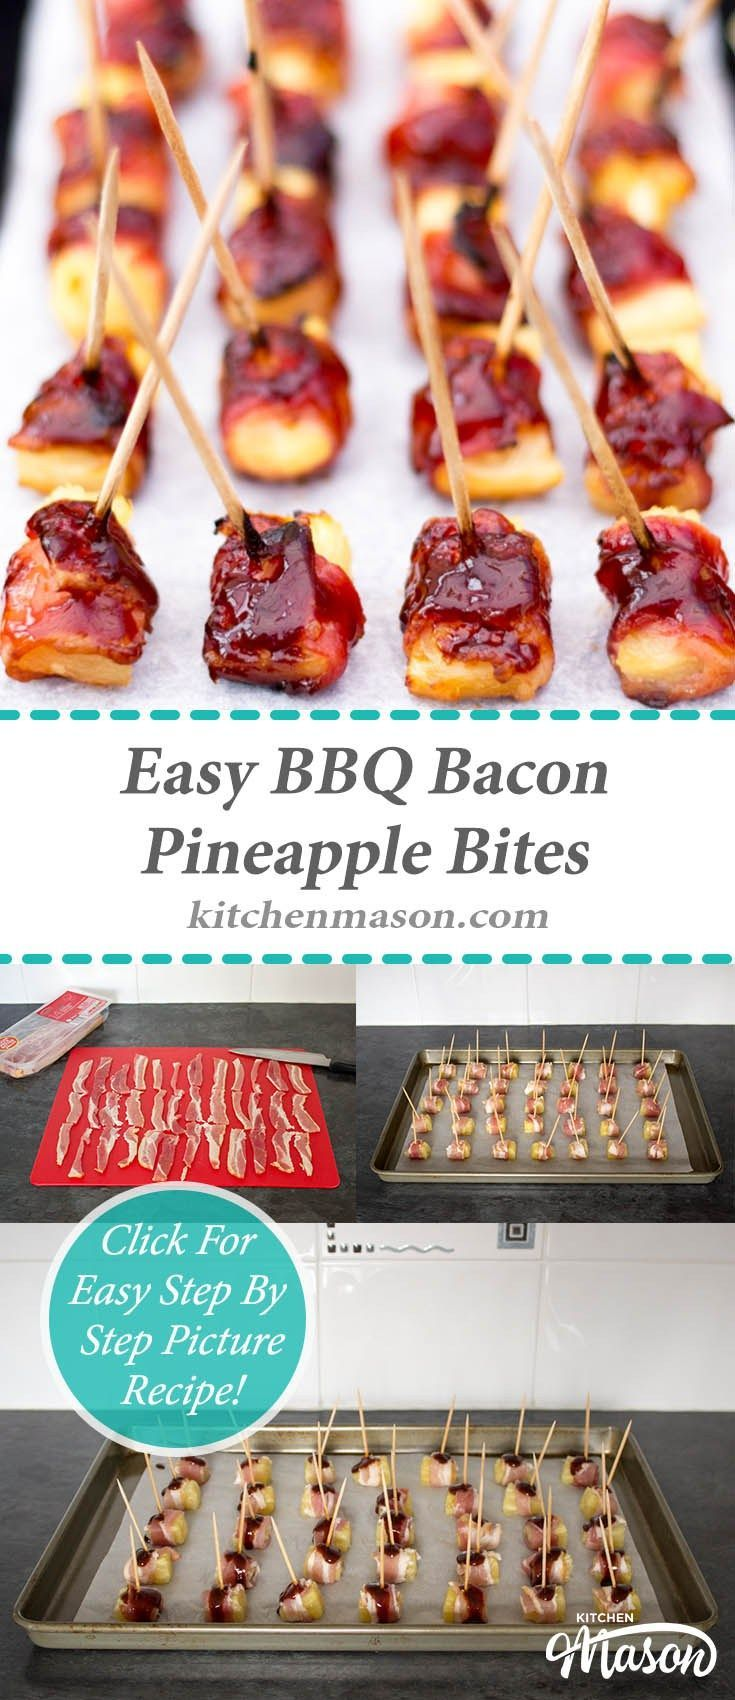 BBQ Bacon Pineapple Bites | Party Food | Easy | Christmas | New Year